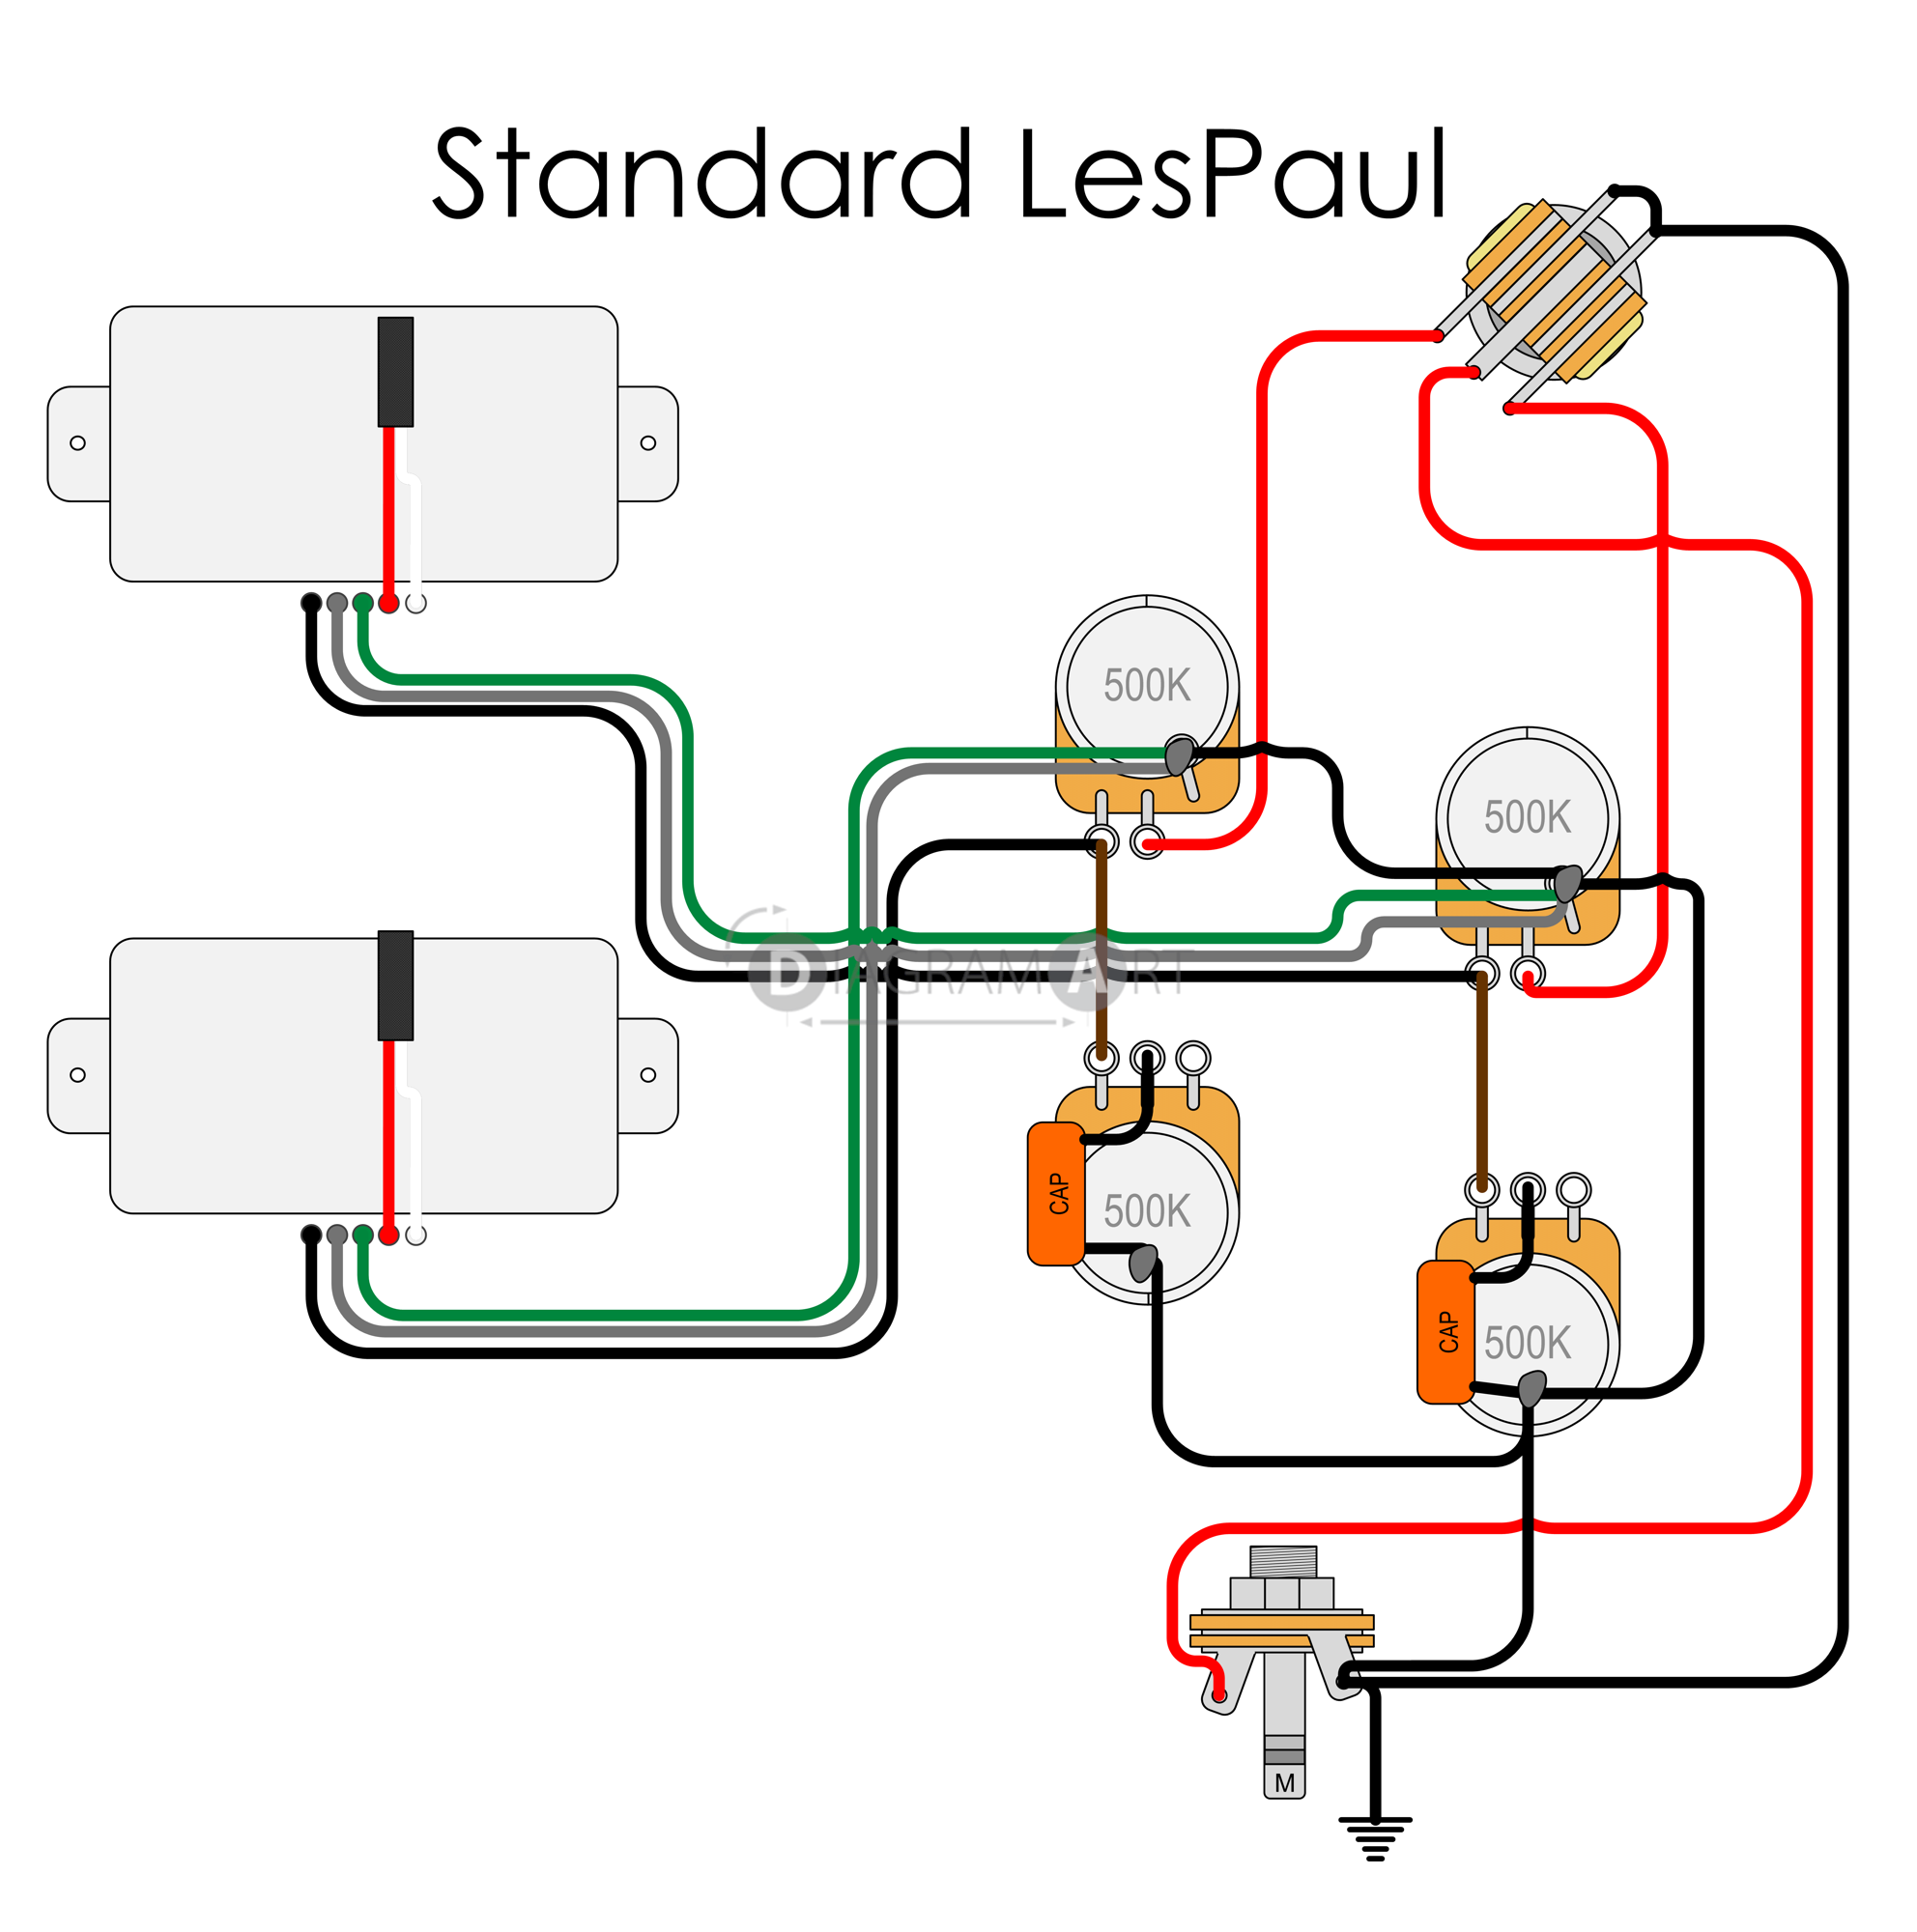 Epiphone Les Paul Standard Wiring Diagram Free Download Electrical Pro Picture For Diagrams Yamaha